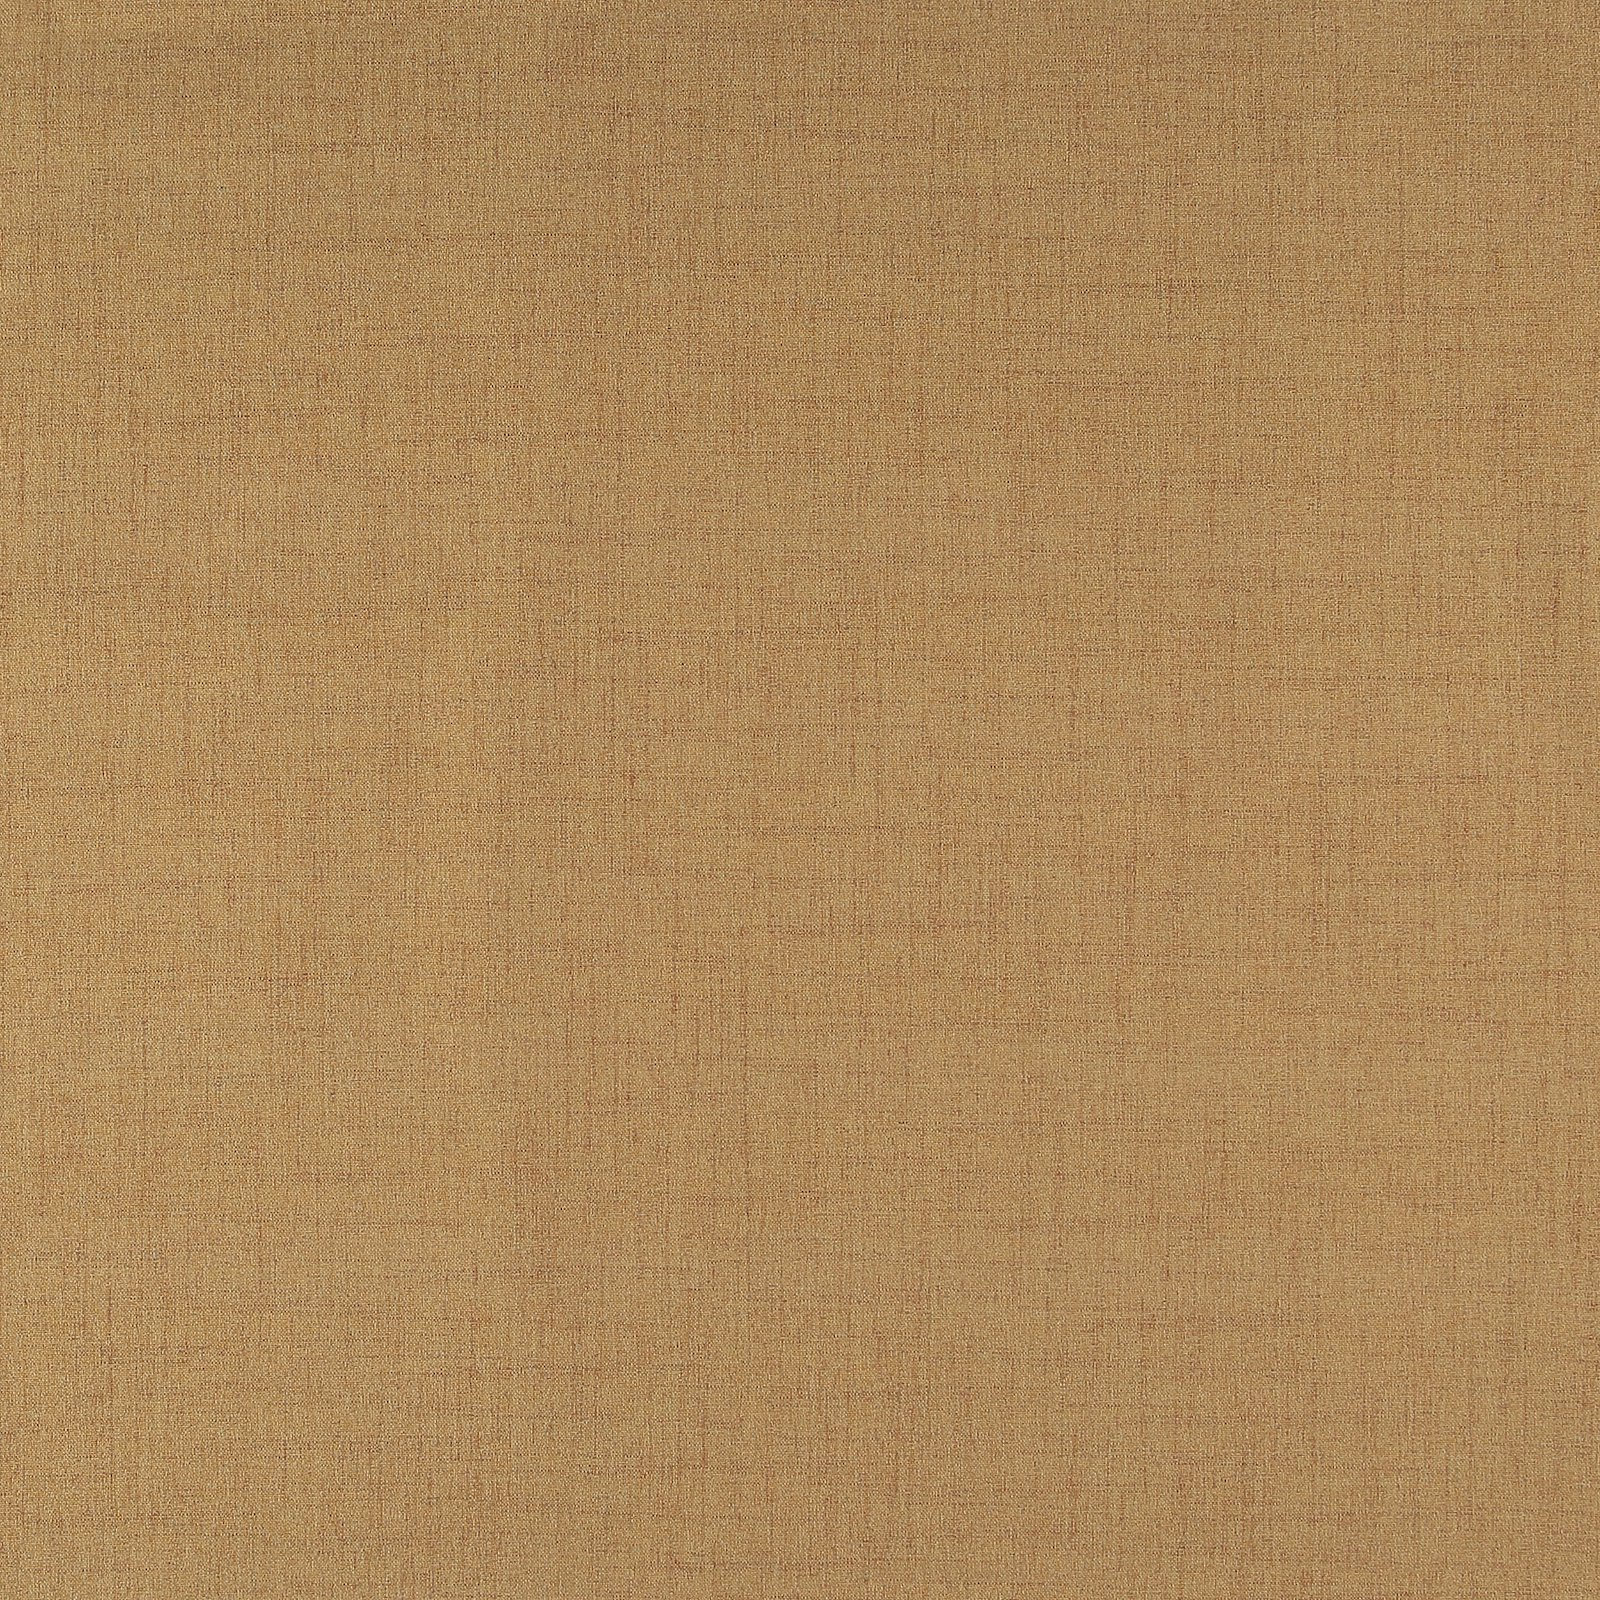 Upholstery fabric w/backing warm curry 824052_pack_solid